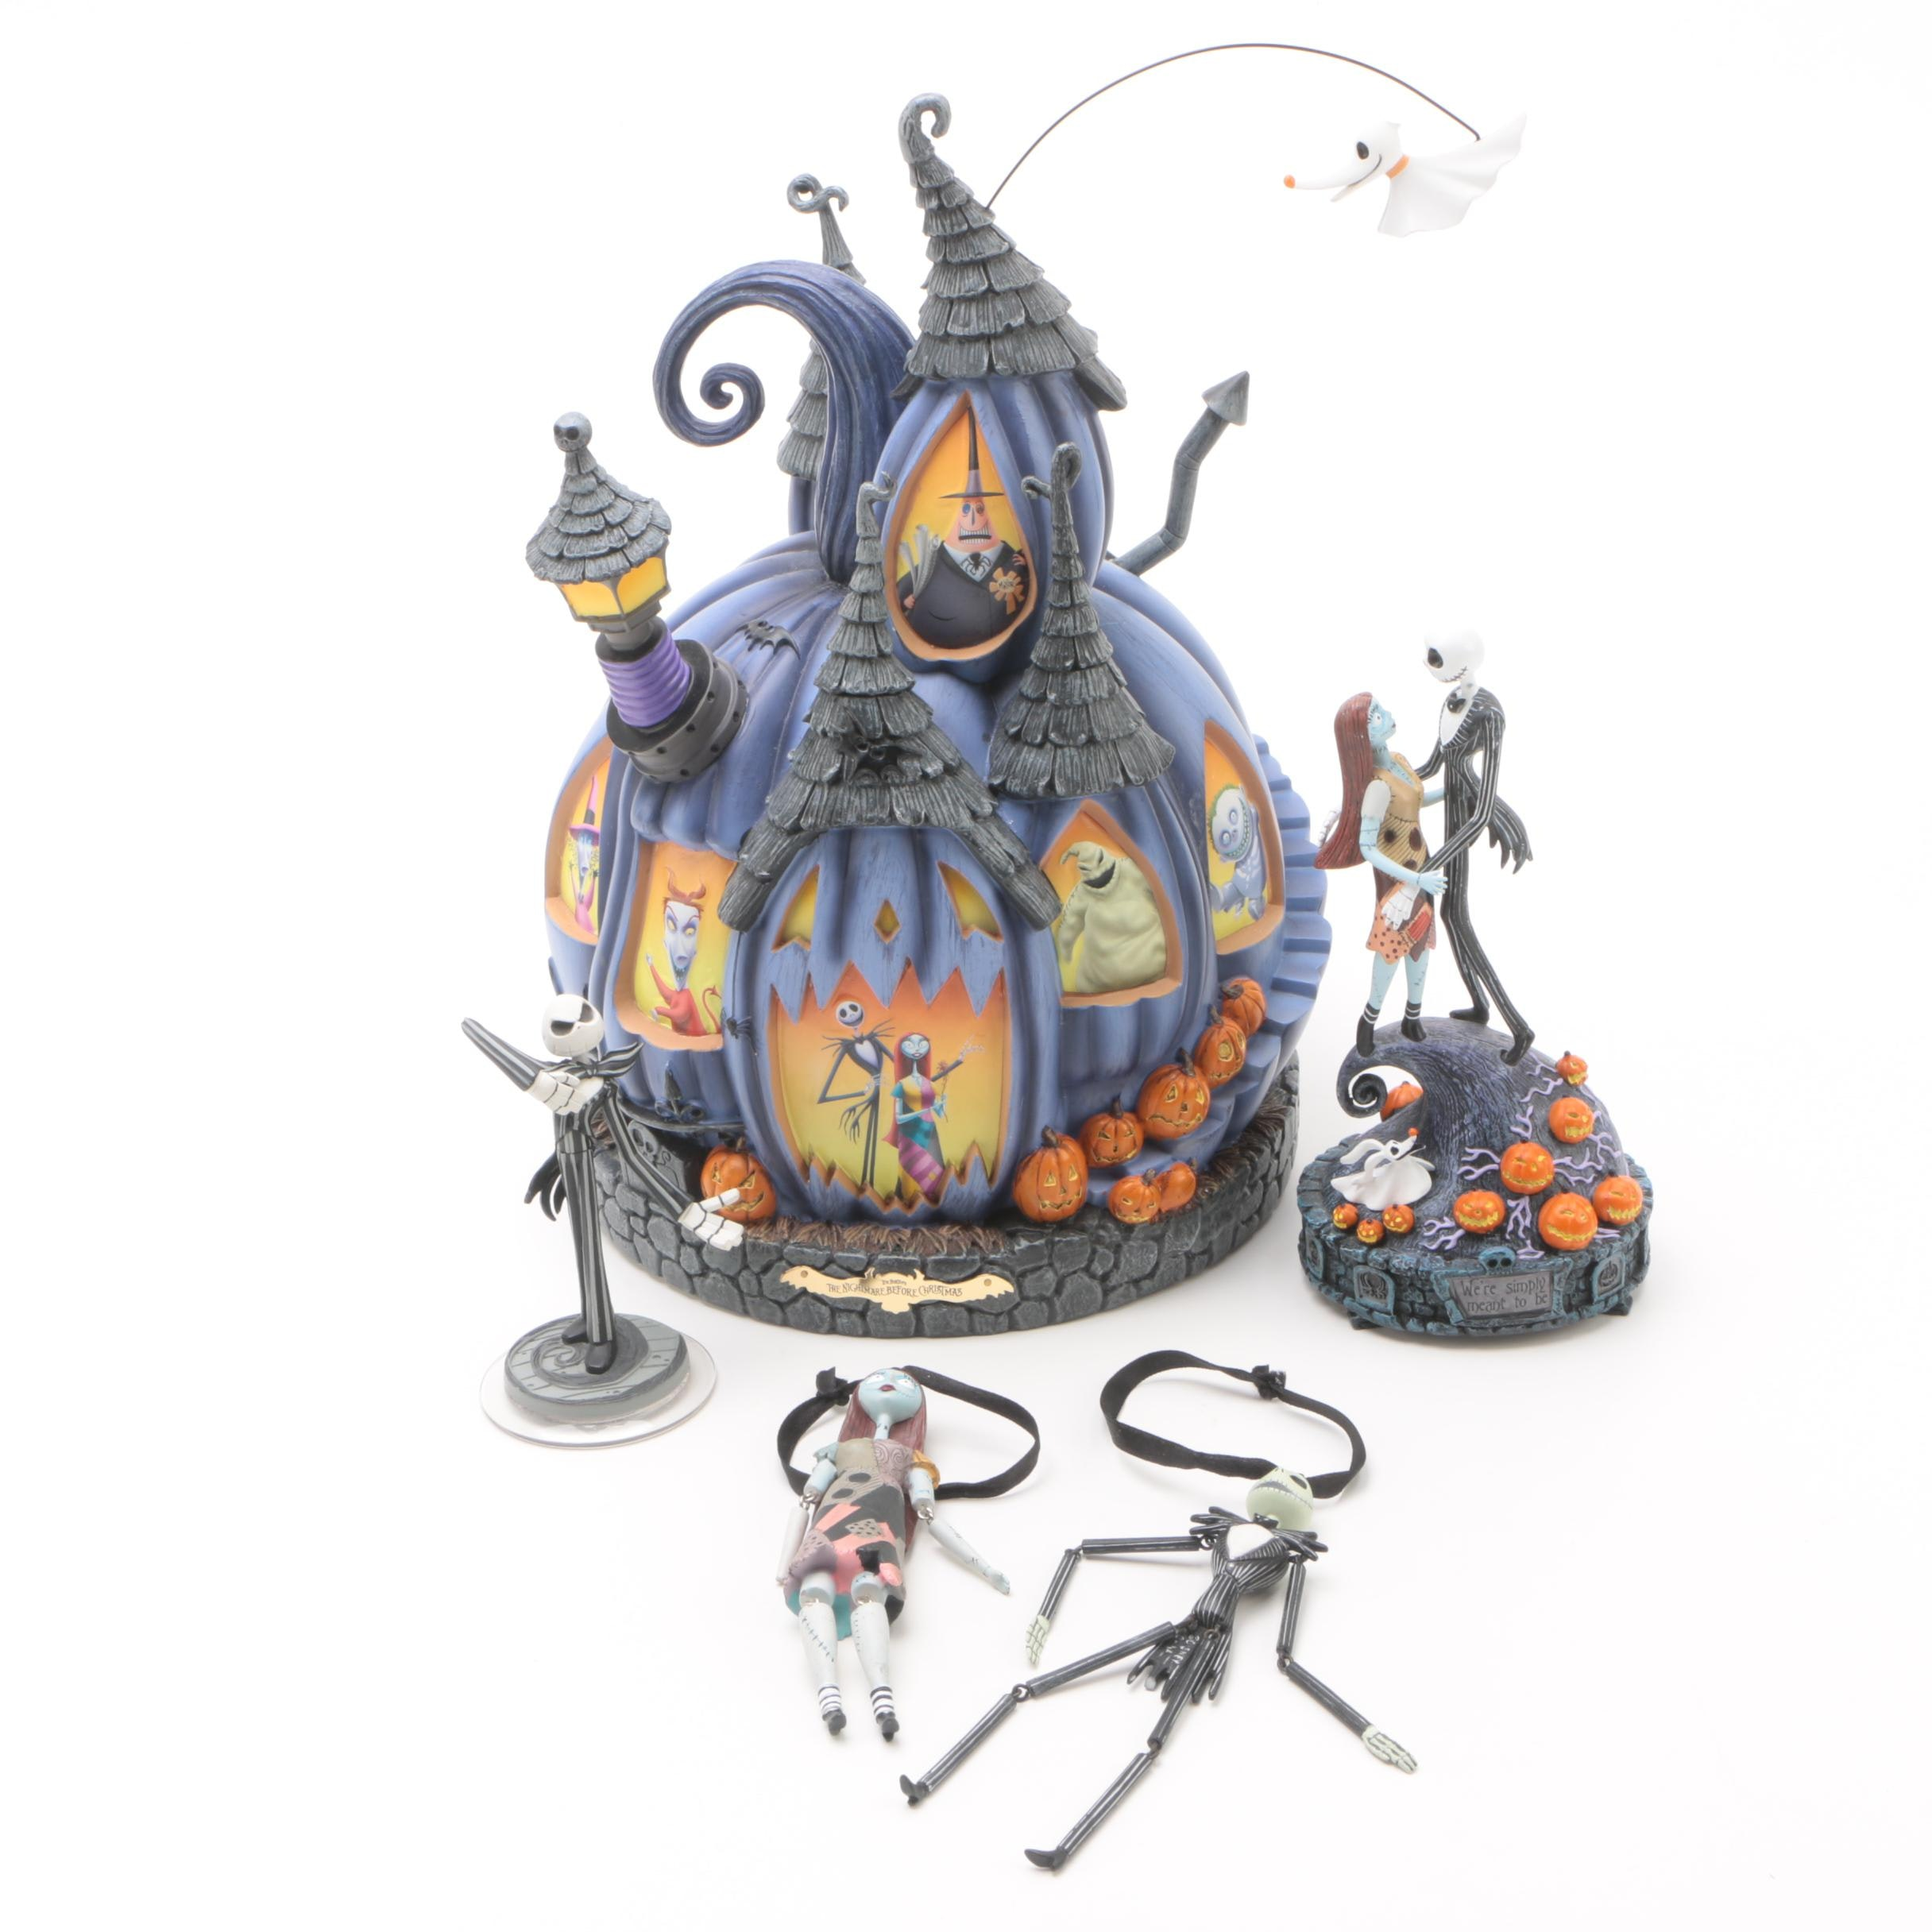 """Tim Burton's """"The Nightmare Before Christmas"""" Musical Figurines and Ornaments"""